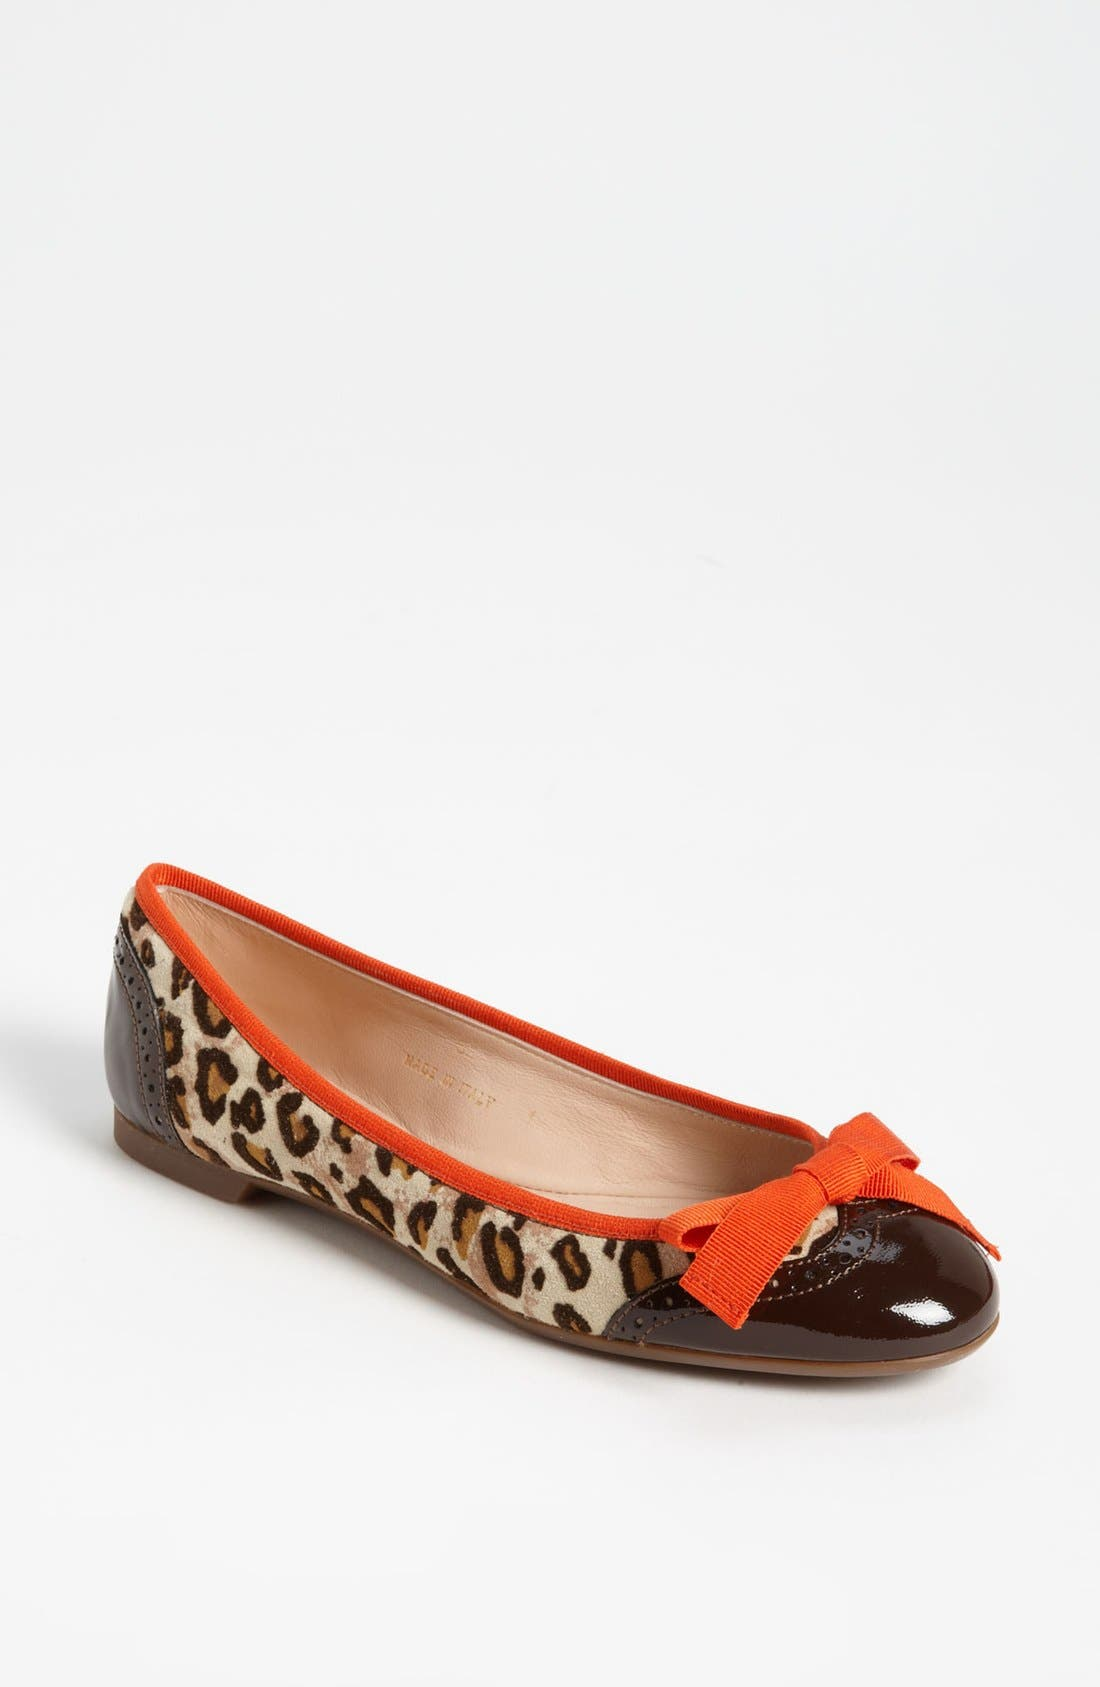 Alternate Image 1 Selected - Sweet Ballerina 'Biancospino' Leopard Print Ballet Flat